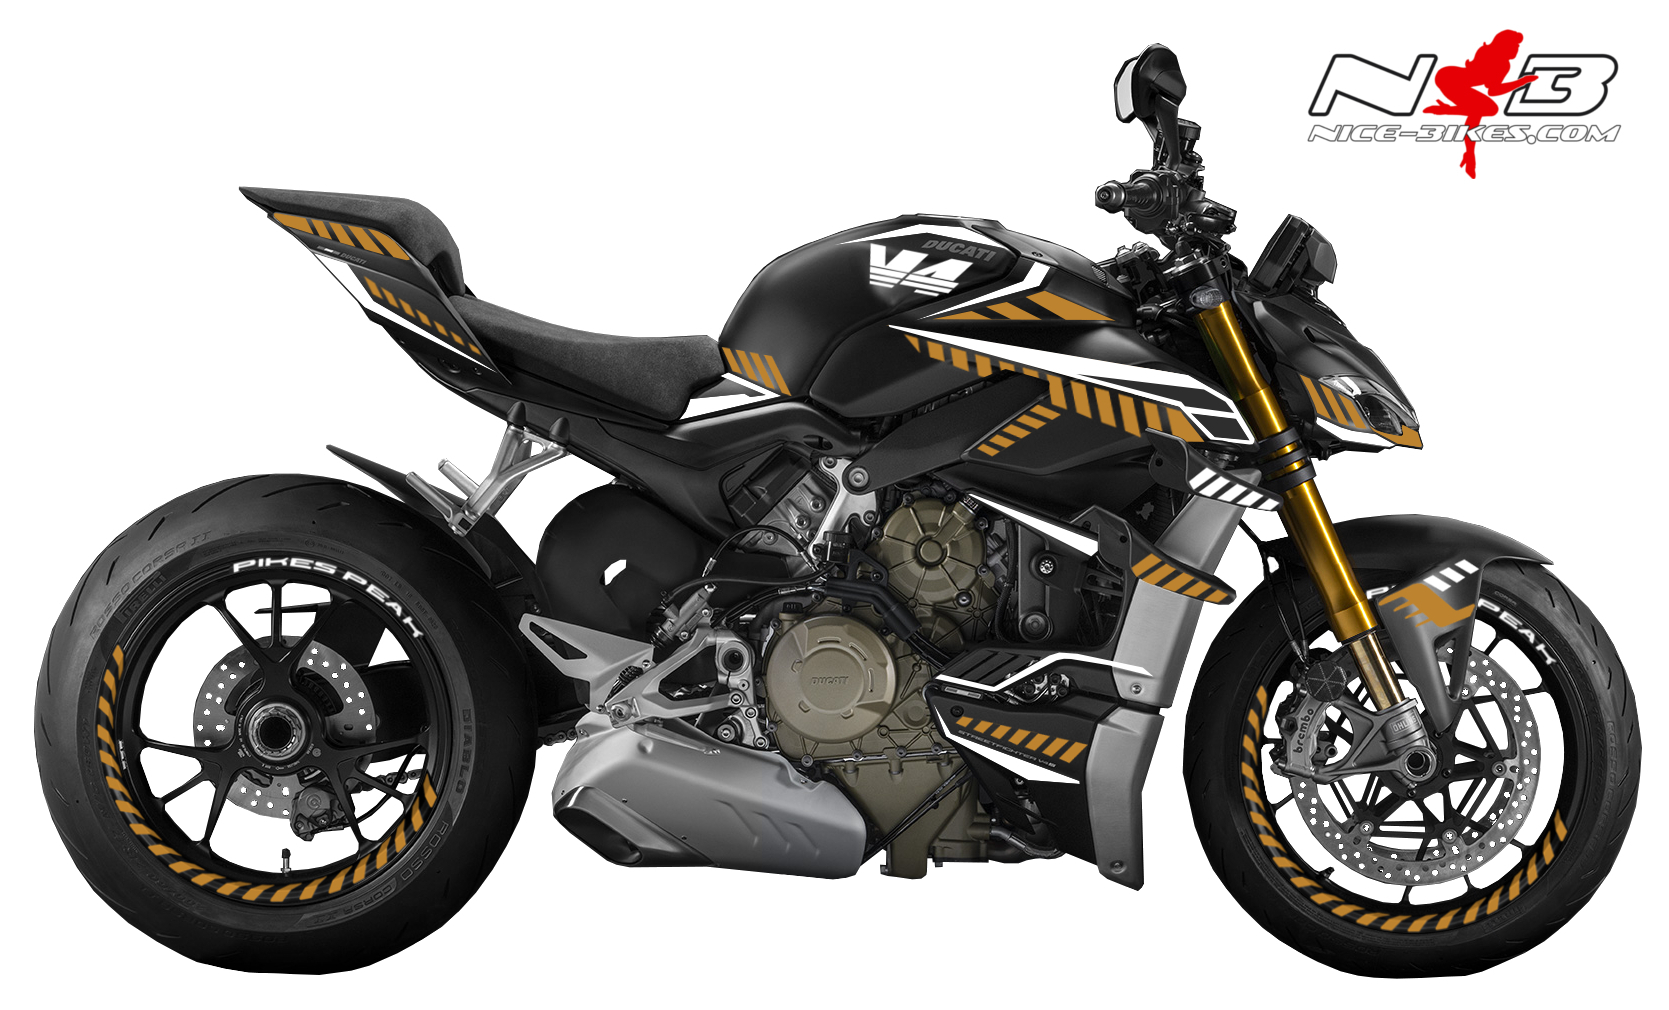 Foliendesign DUCATI Streetfighter ab 2021 Inferno Edition Olympic Gold